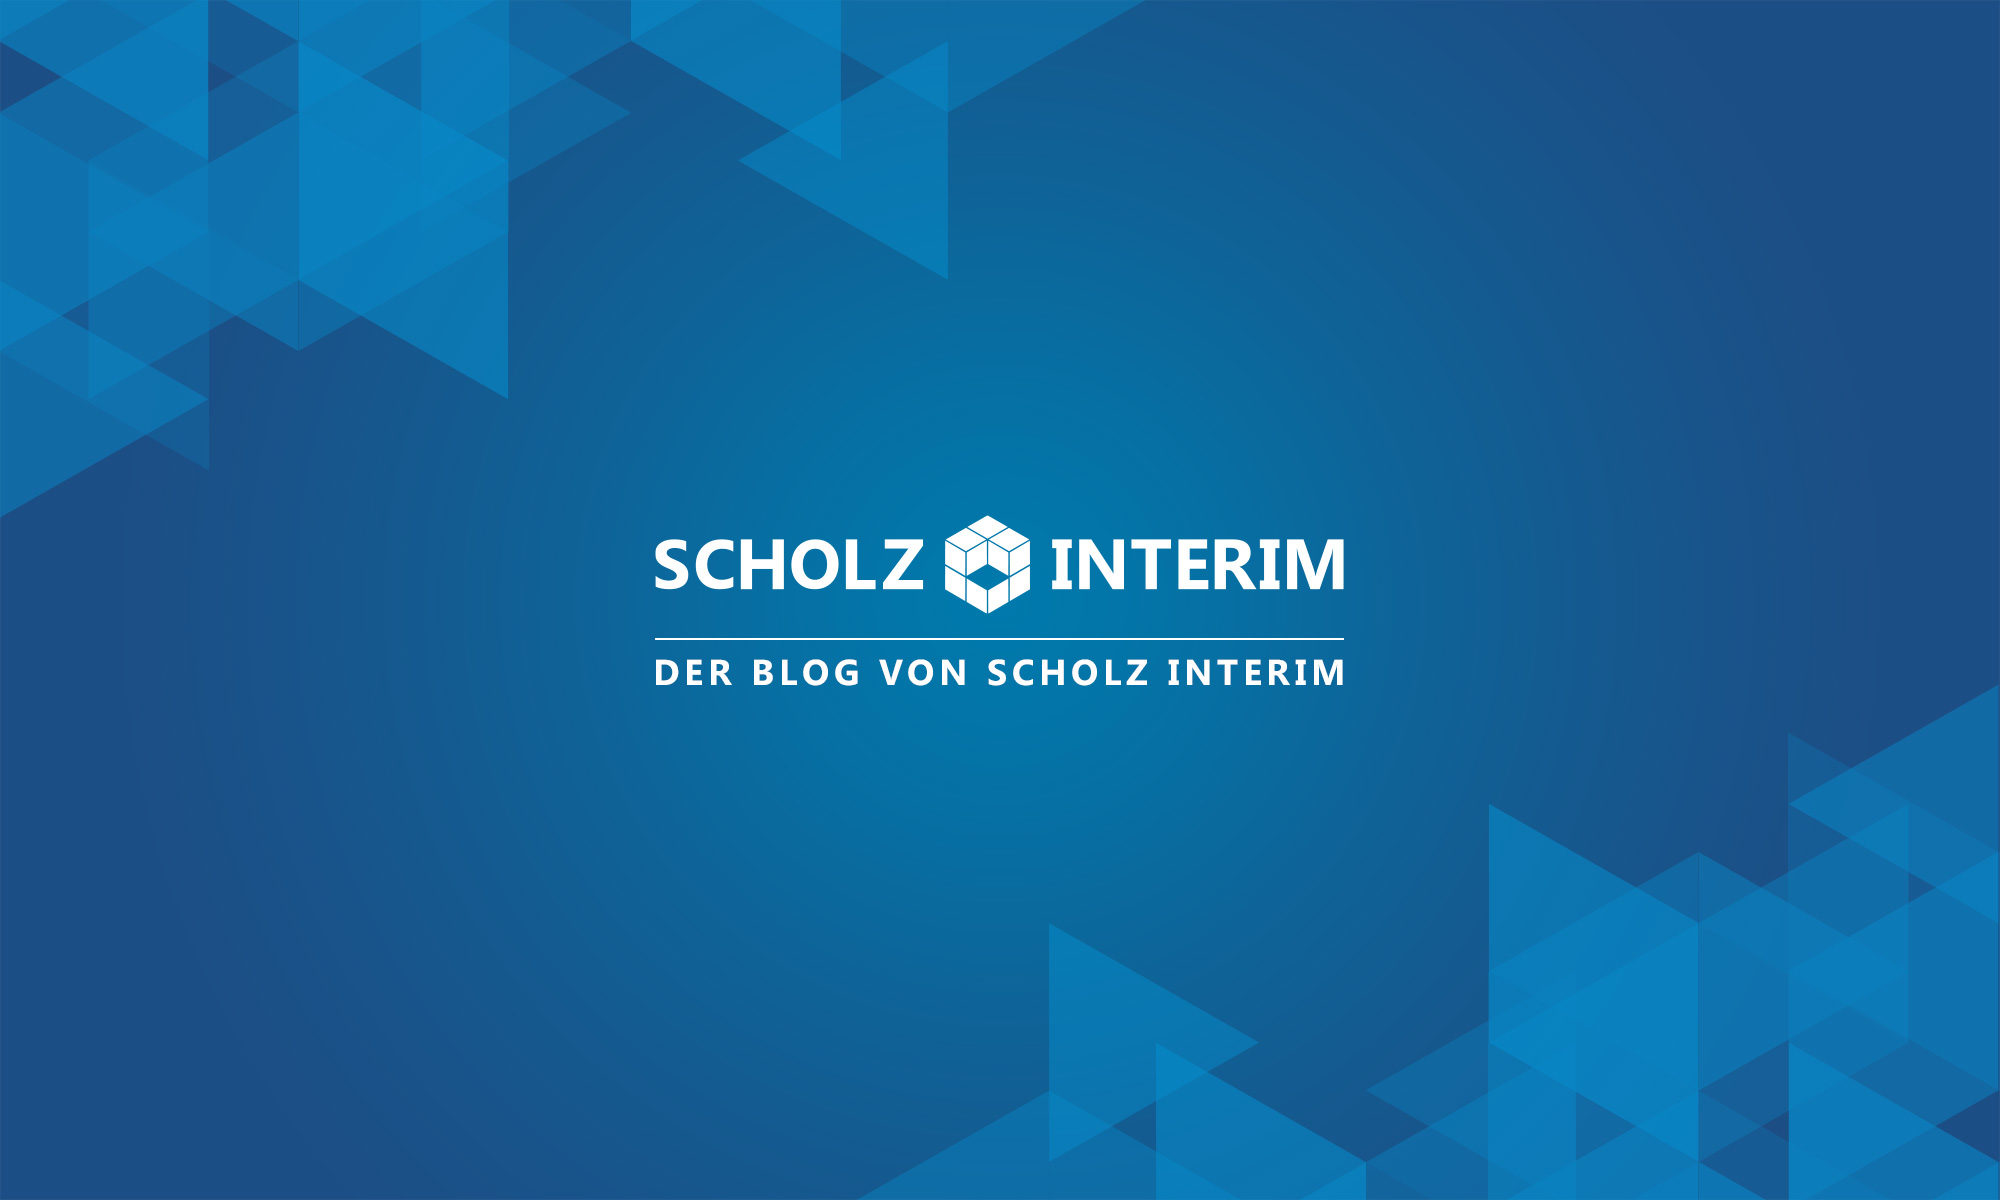 blog.scholz-interim.de